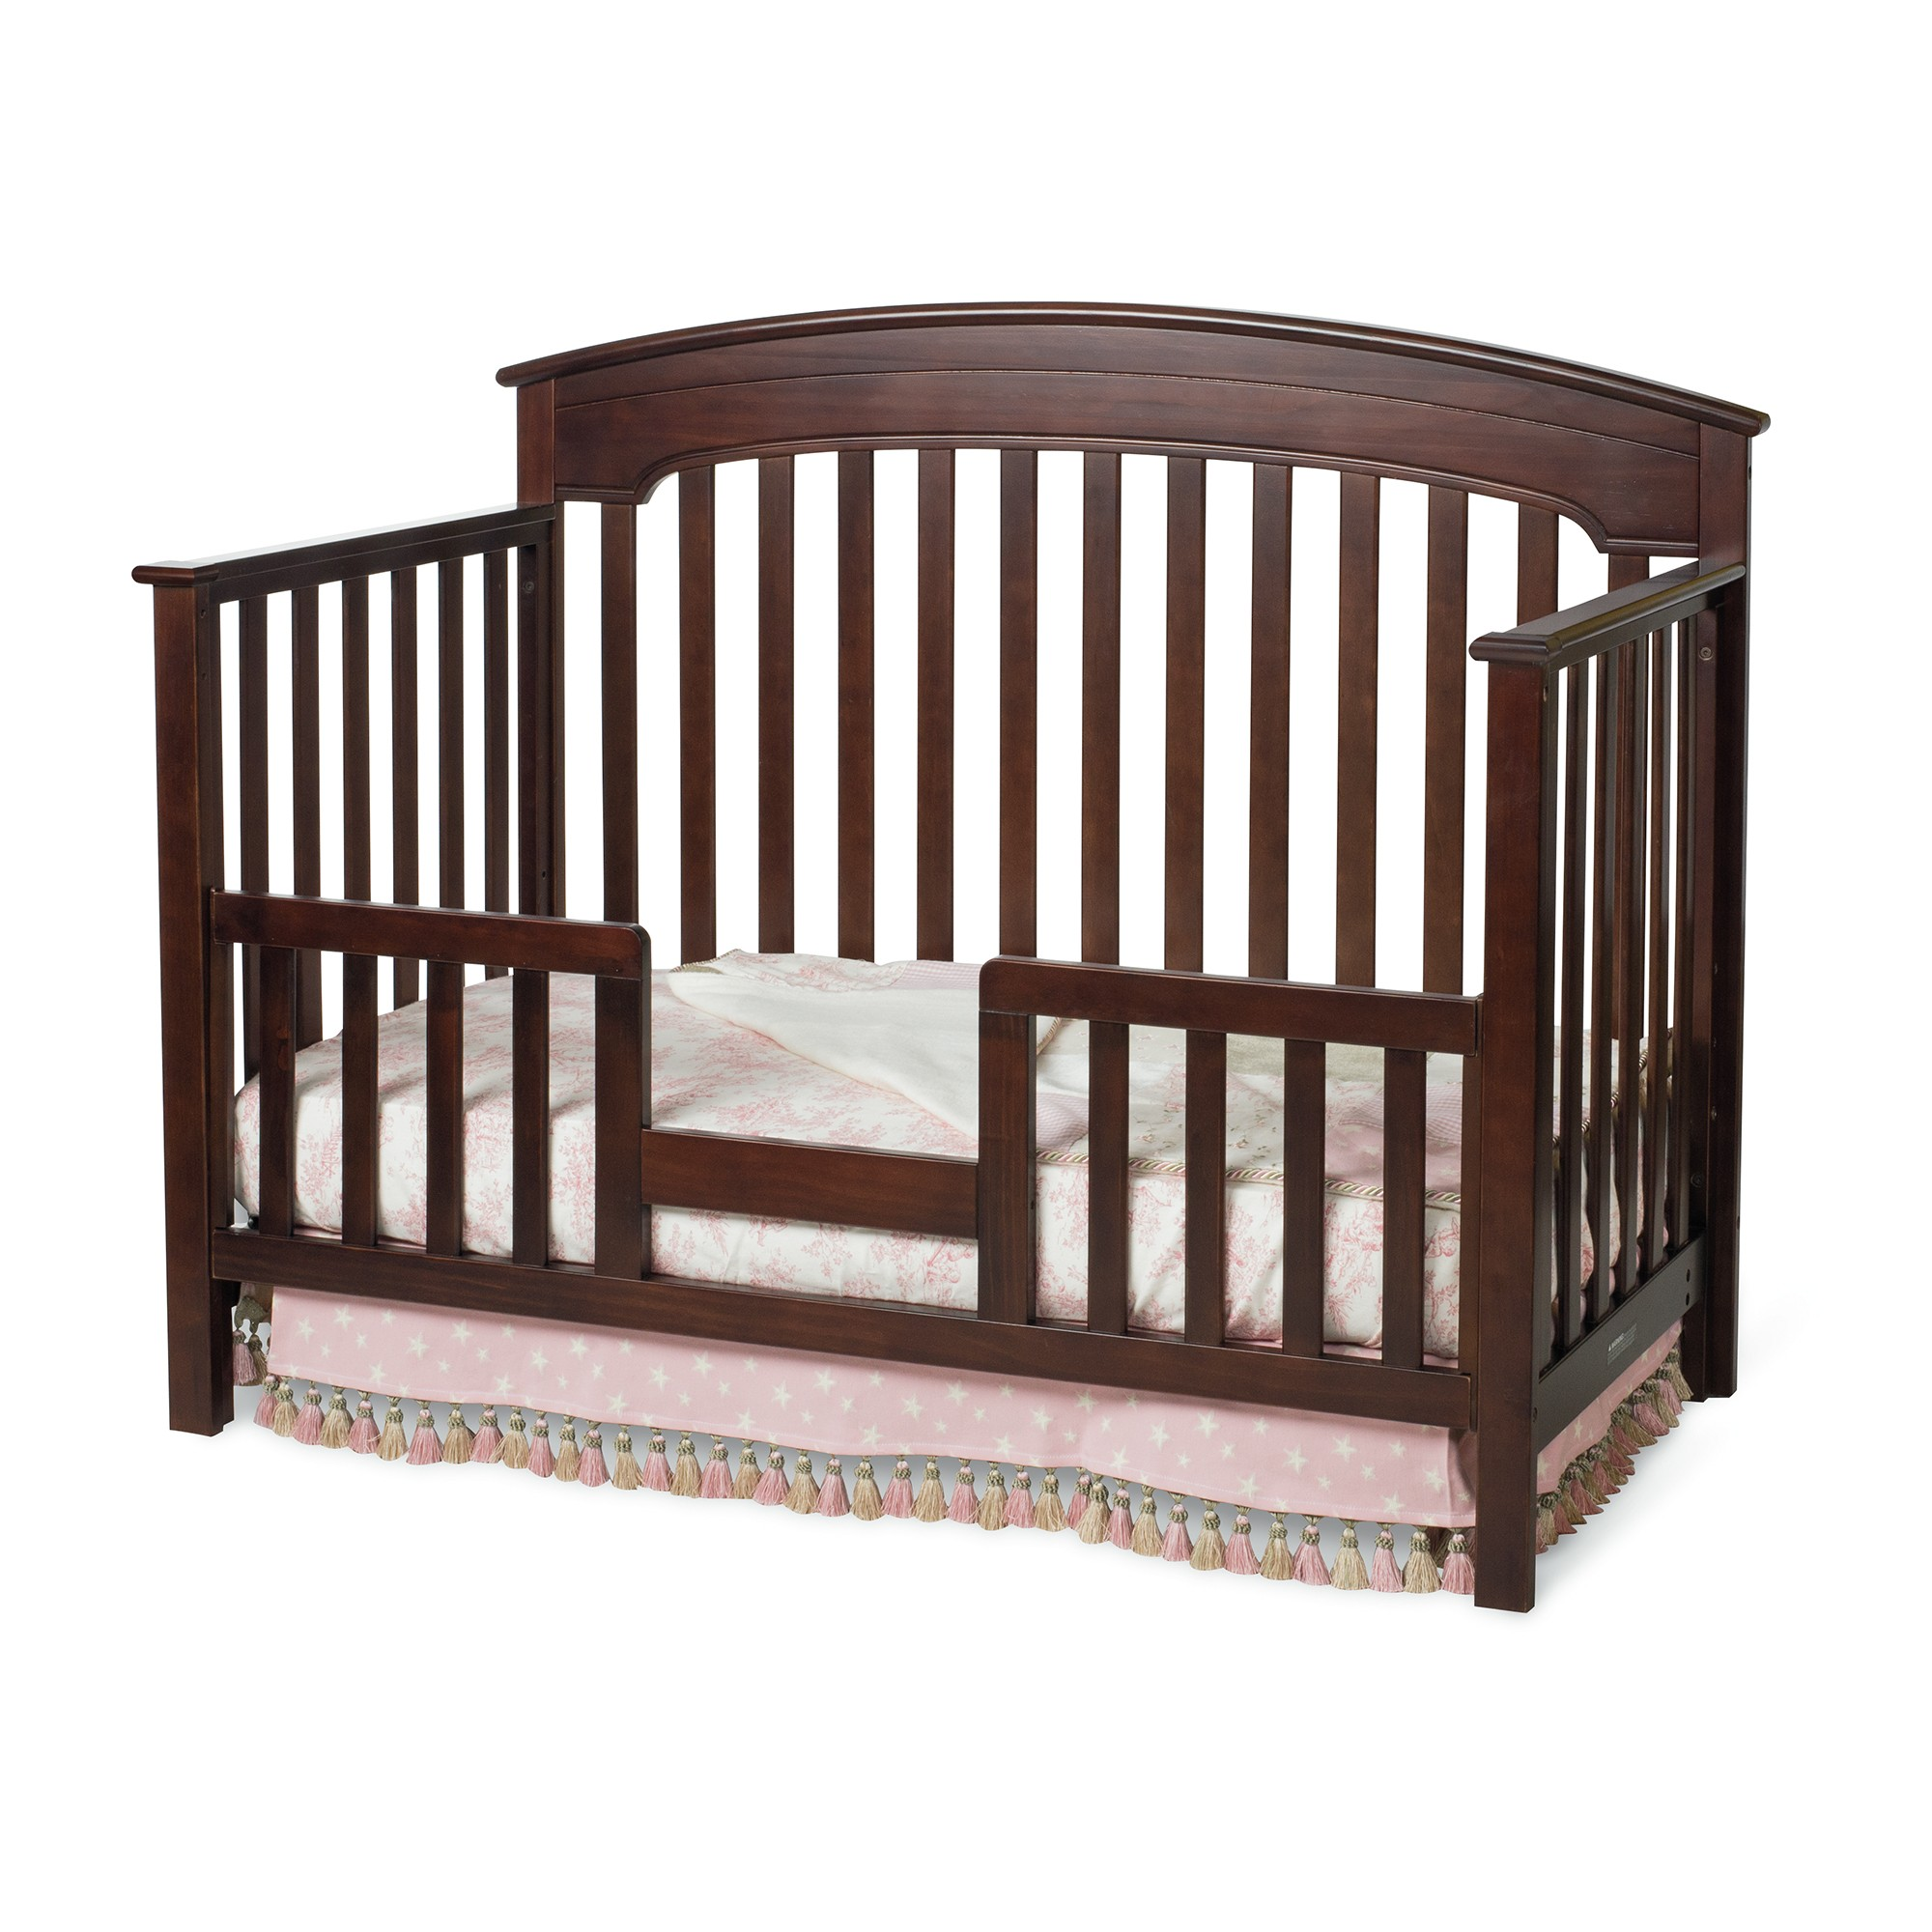 Child Craft Sheldon Toddler Guard Rail And Bed Rails